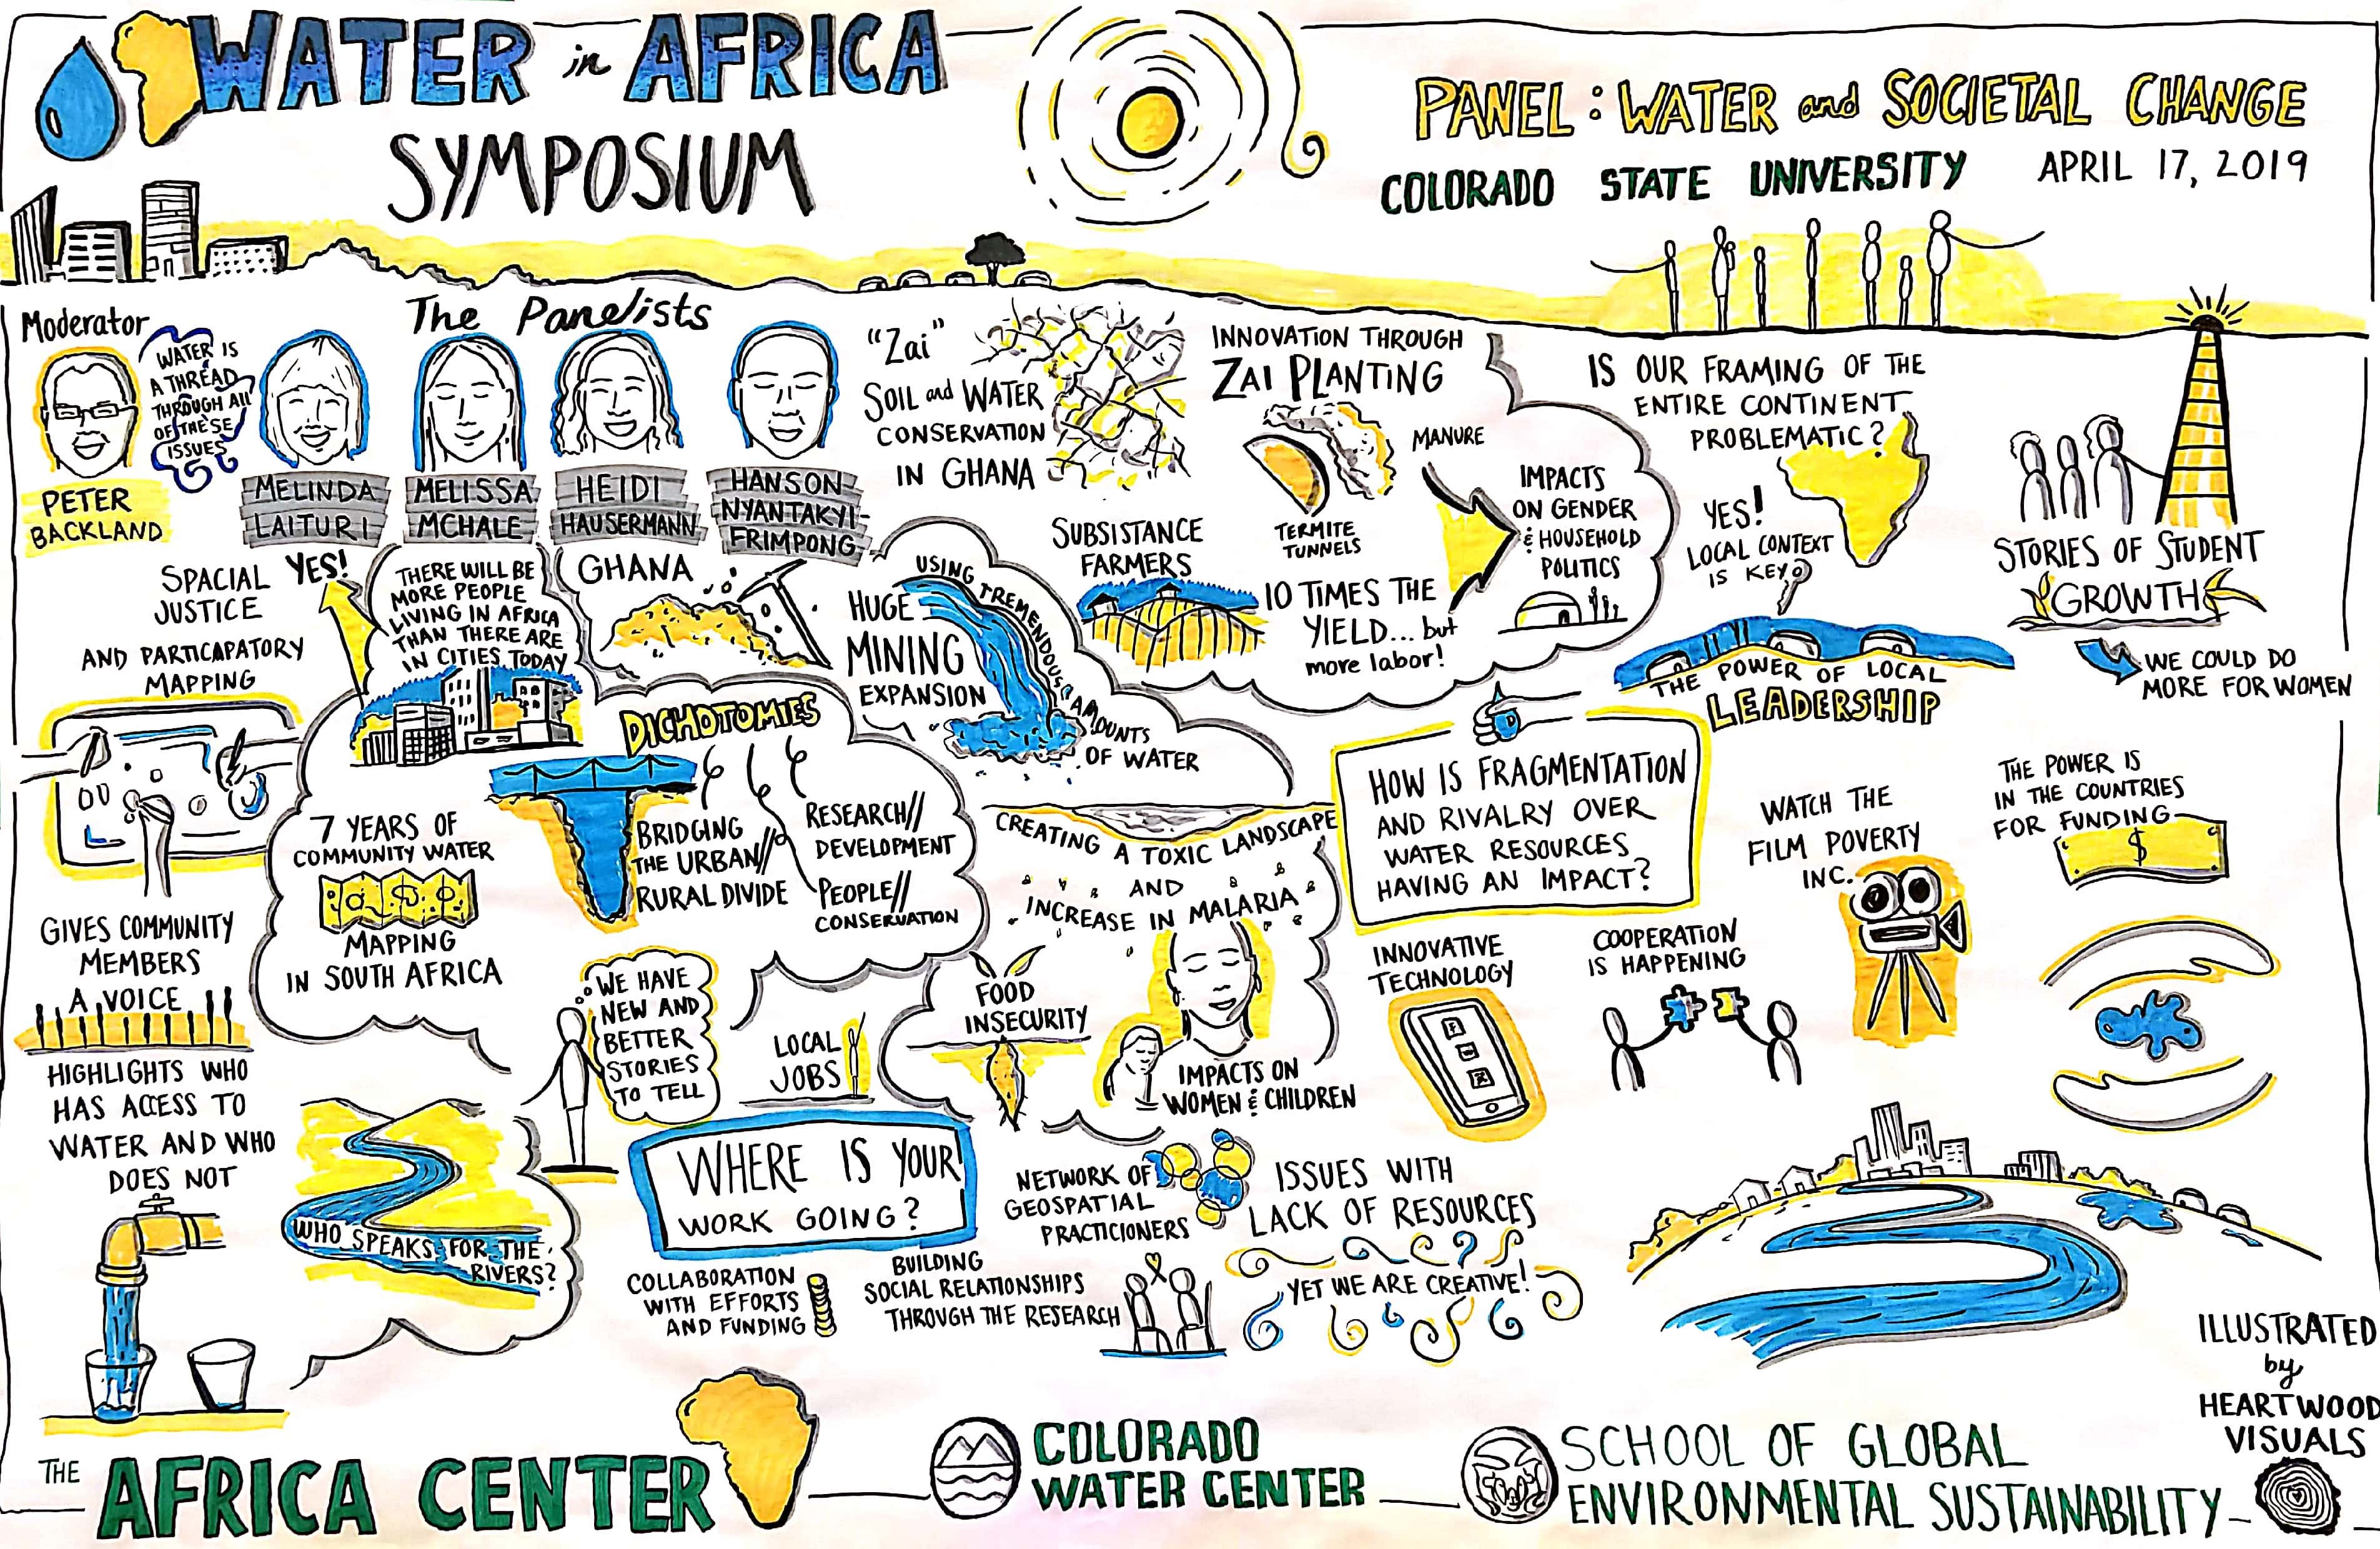 Water & Societal Change Panel Graphic Recording, Water in Africa Symposium, Colorado State University